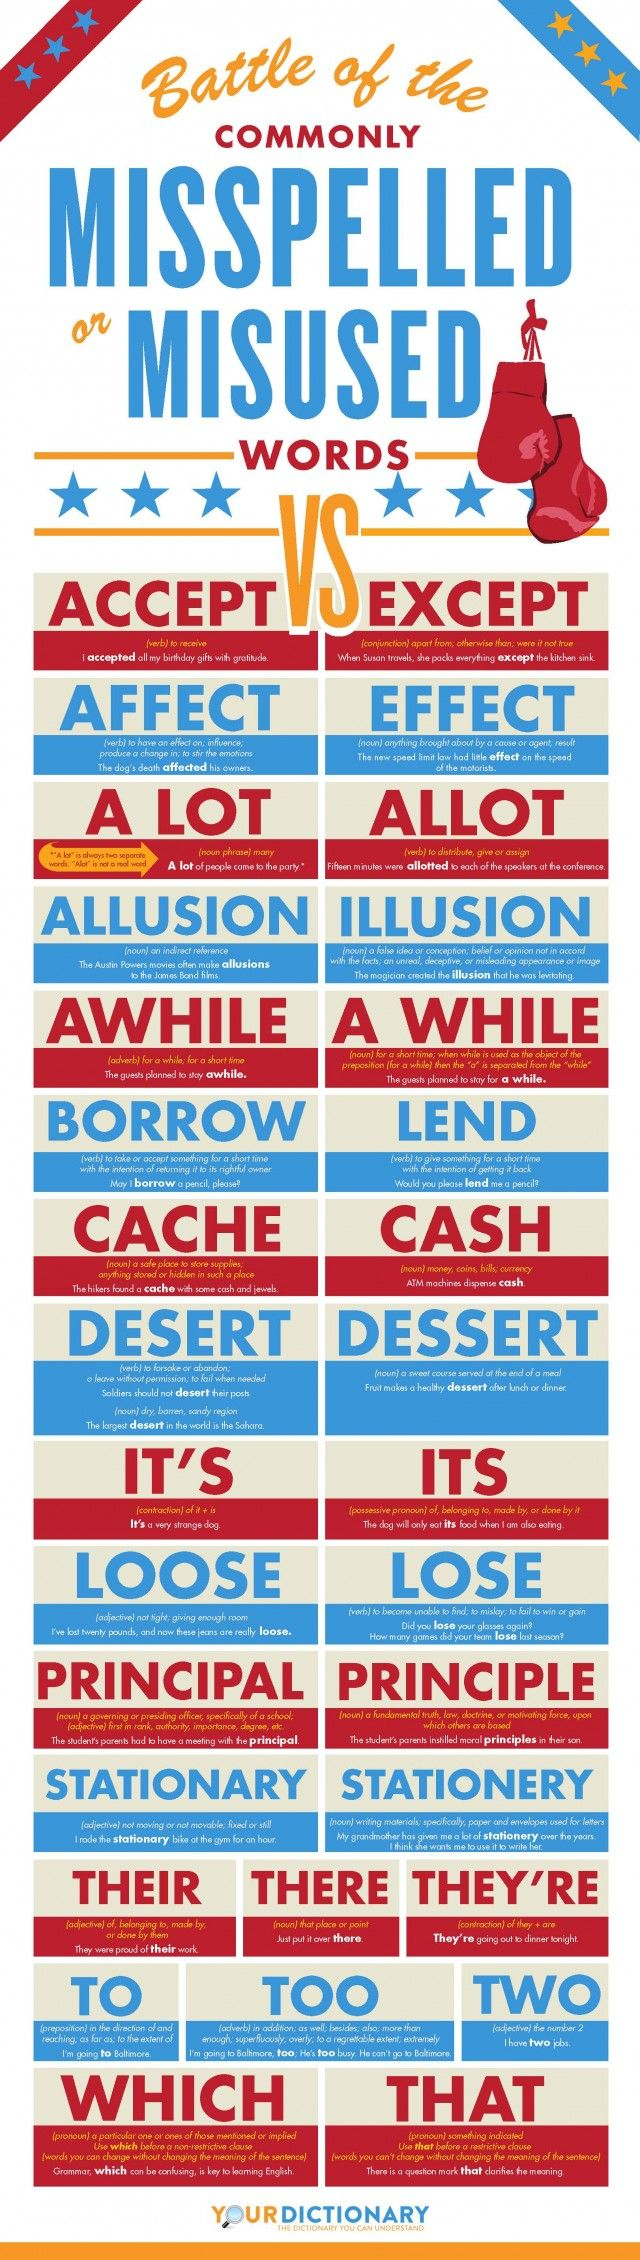 Commonly Misspelled or Misused Words [Infographic] | Daily Infographic